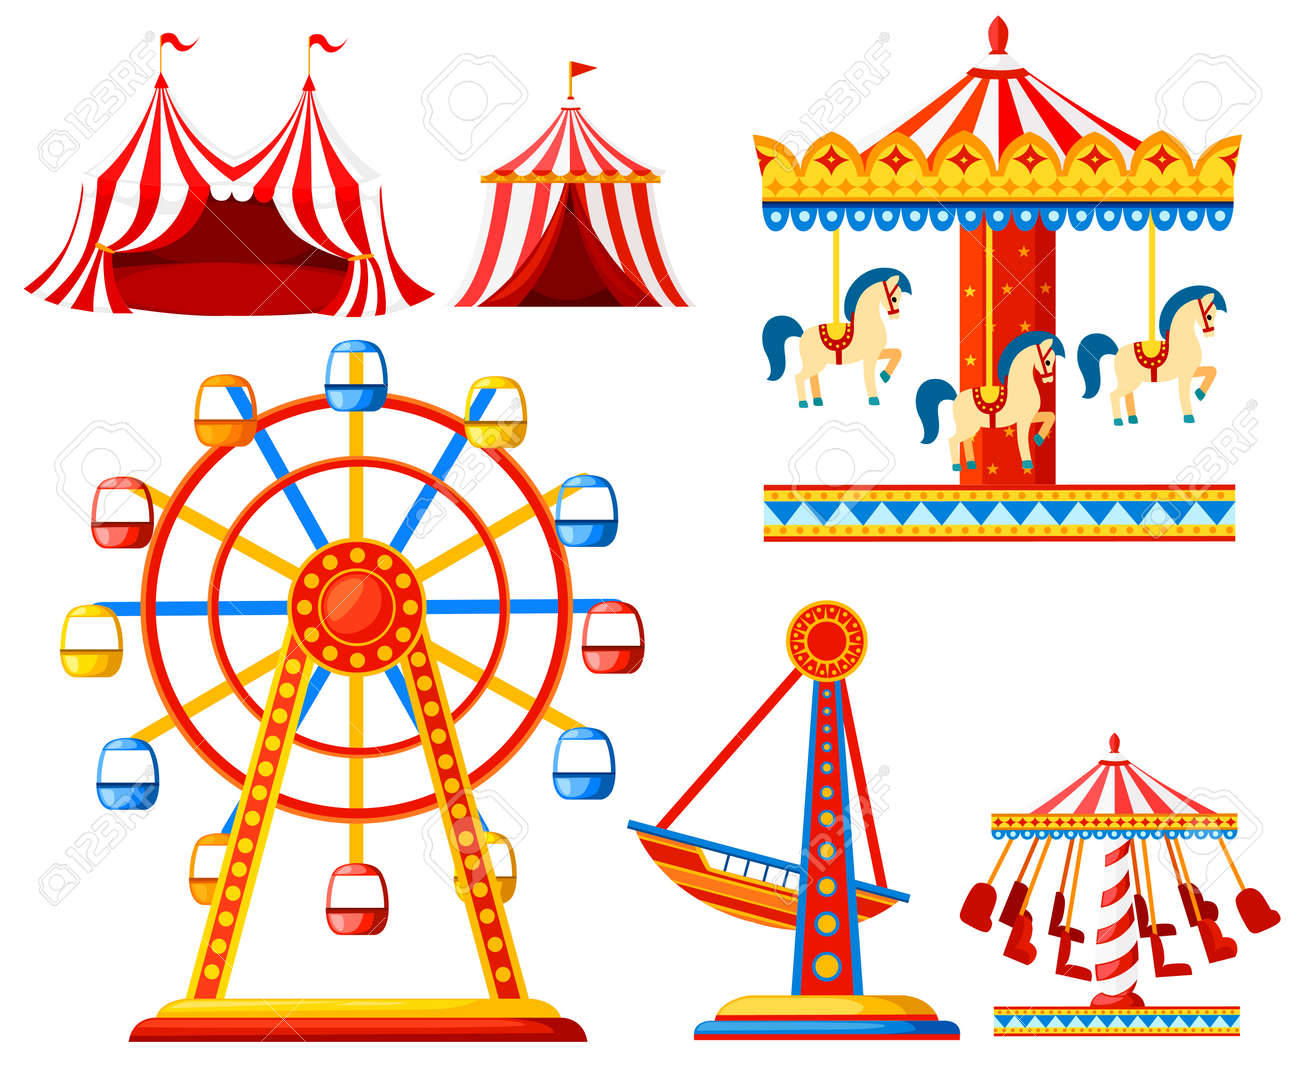 Set of carnival circus icons. Amusement park collection. Tent, carousel, ferris wheel, pirate ship. Cartoon style design. Vector illustration isolated on white background. - 98771810